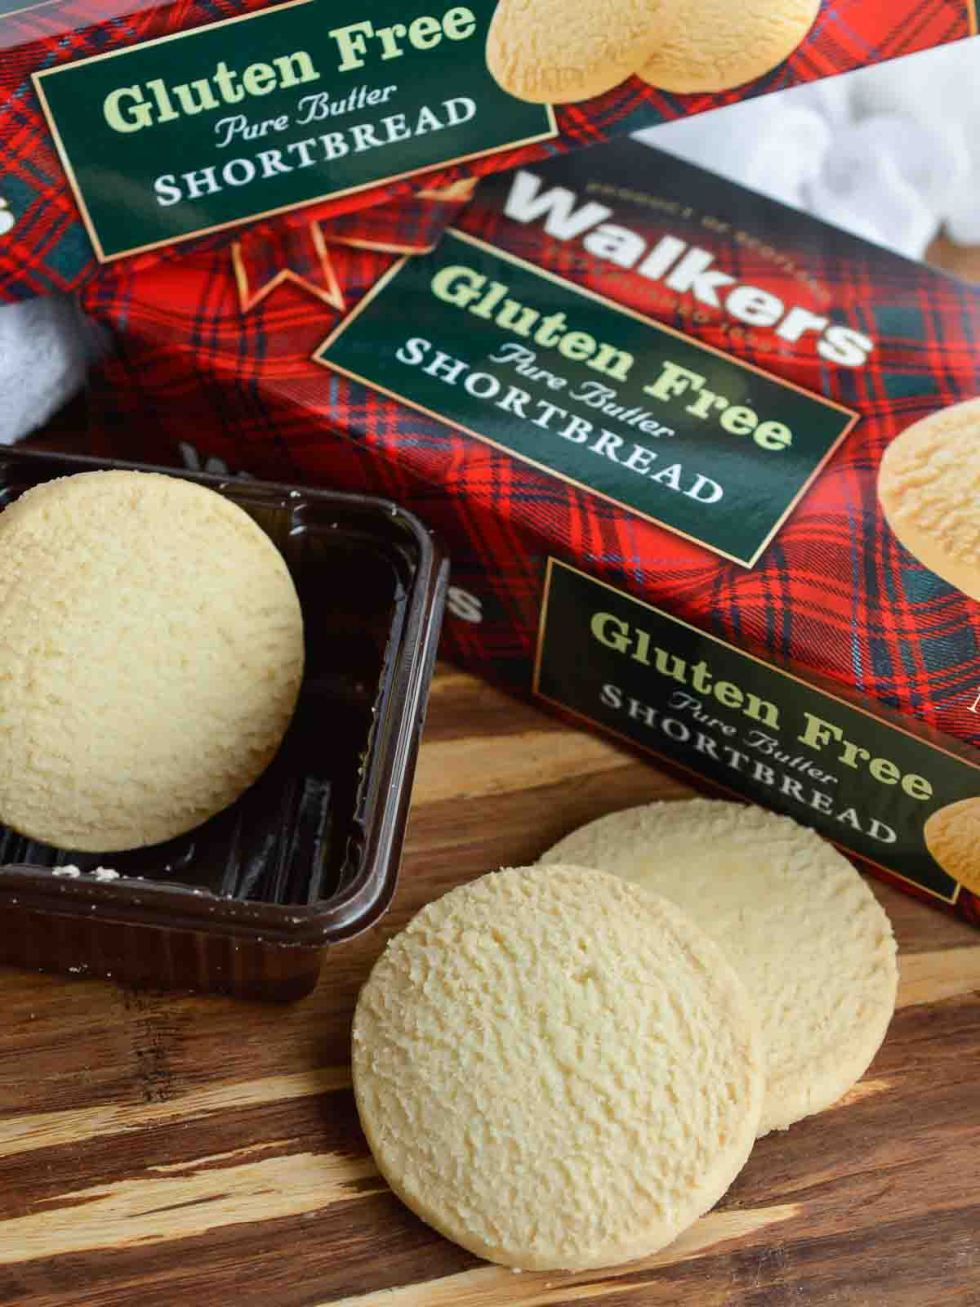 Gluten Free Walkers Shortbread